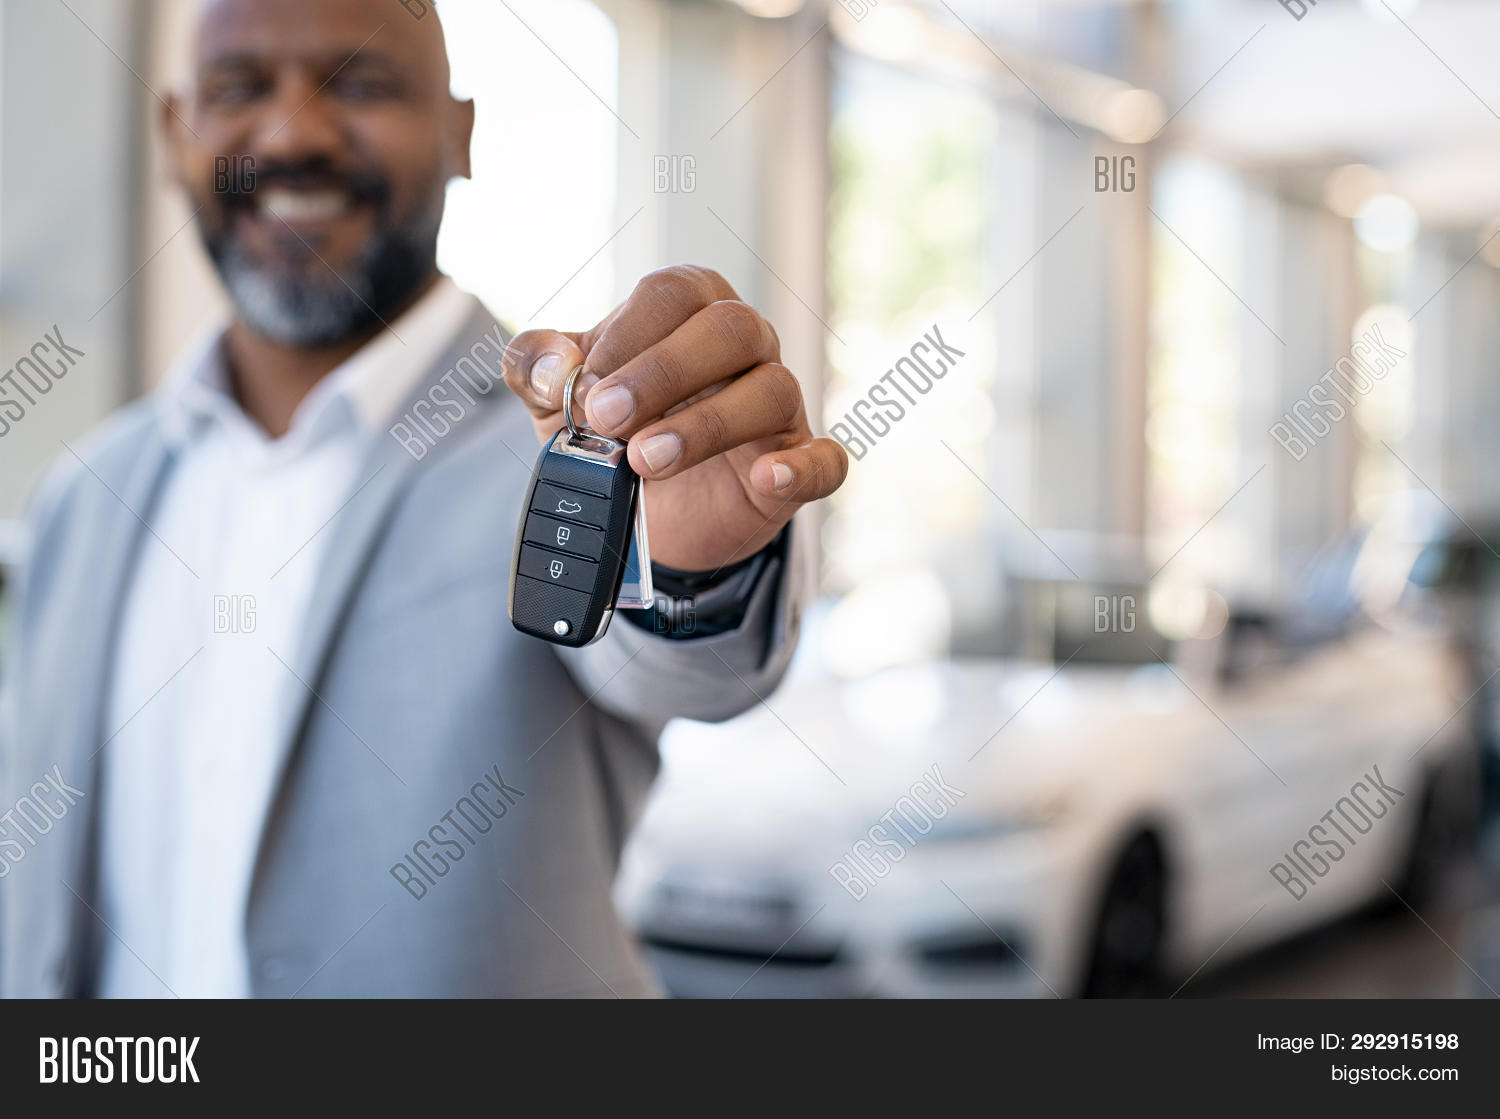 african,african american,agent,american,auto,automobile,black,business,business man,buy,buyer,car deal,car dealer,close up hand,closeup,copy space,customer,dealer,dealership,give,giving,hand,happy,holding,key,lock,luxury,man,mature,new,new car,owner,people,purchase,remote,rental,rental car,sale,salesman,salon,security,sell,seller,service,showing,showroom,toothy smile,transport,transportation background,vehicle